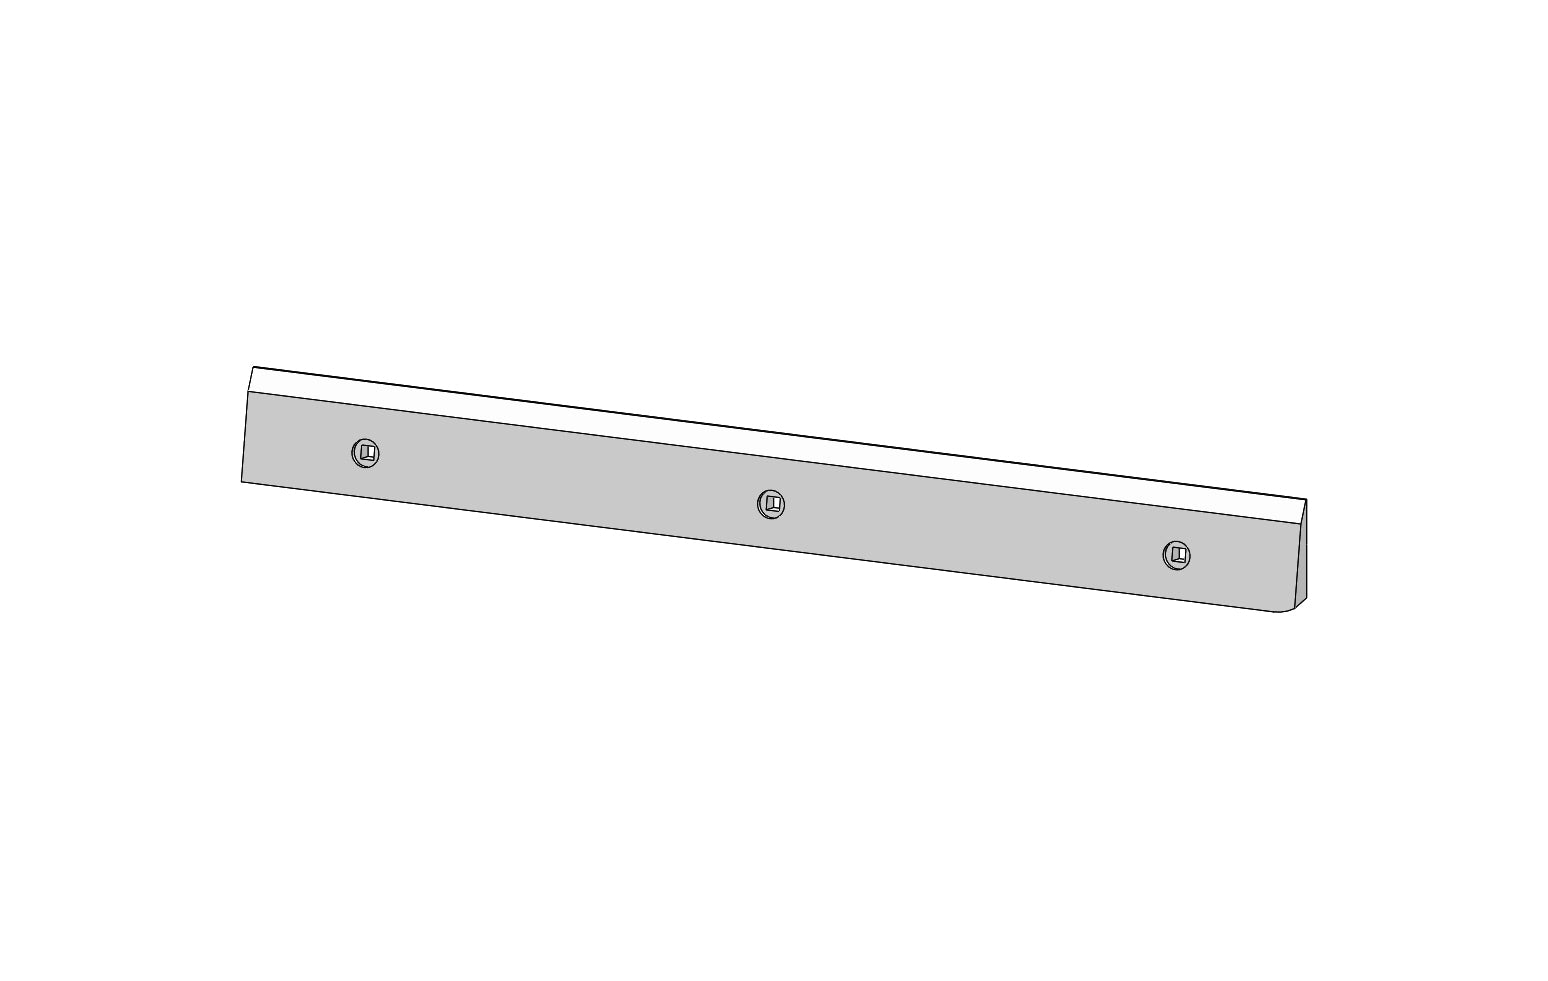 SCM26929B - TABLET GUIDE - Slat Filler Spare Part